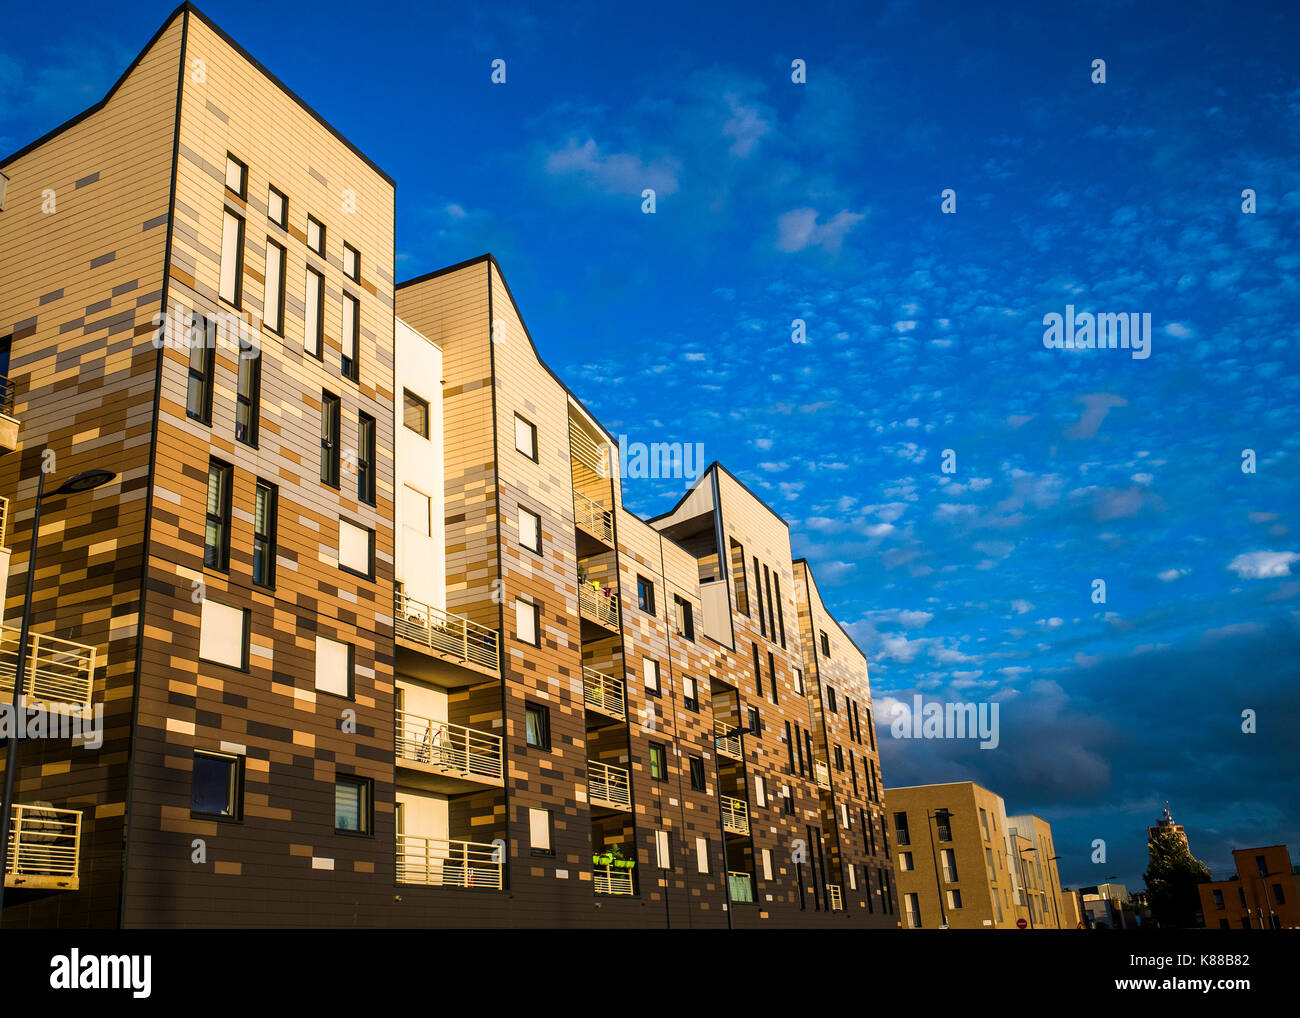 modern block of flats in dunkirk harbour at sunset - Stock Image